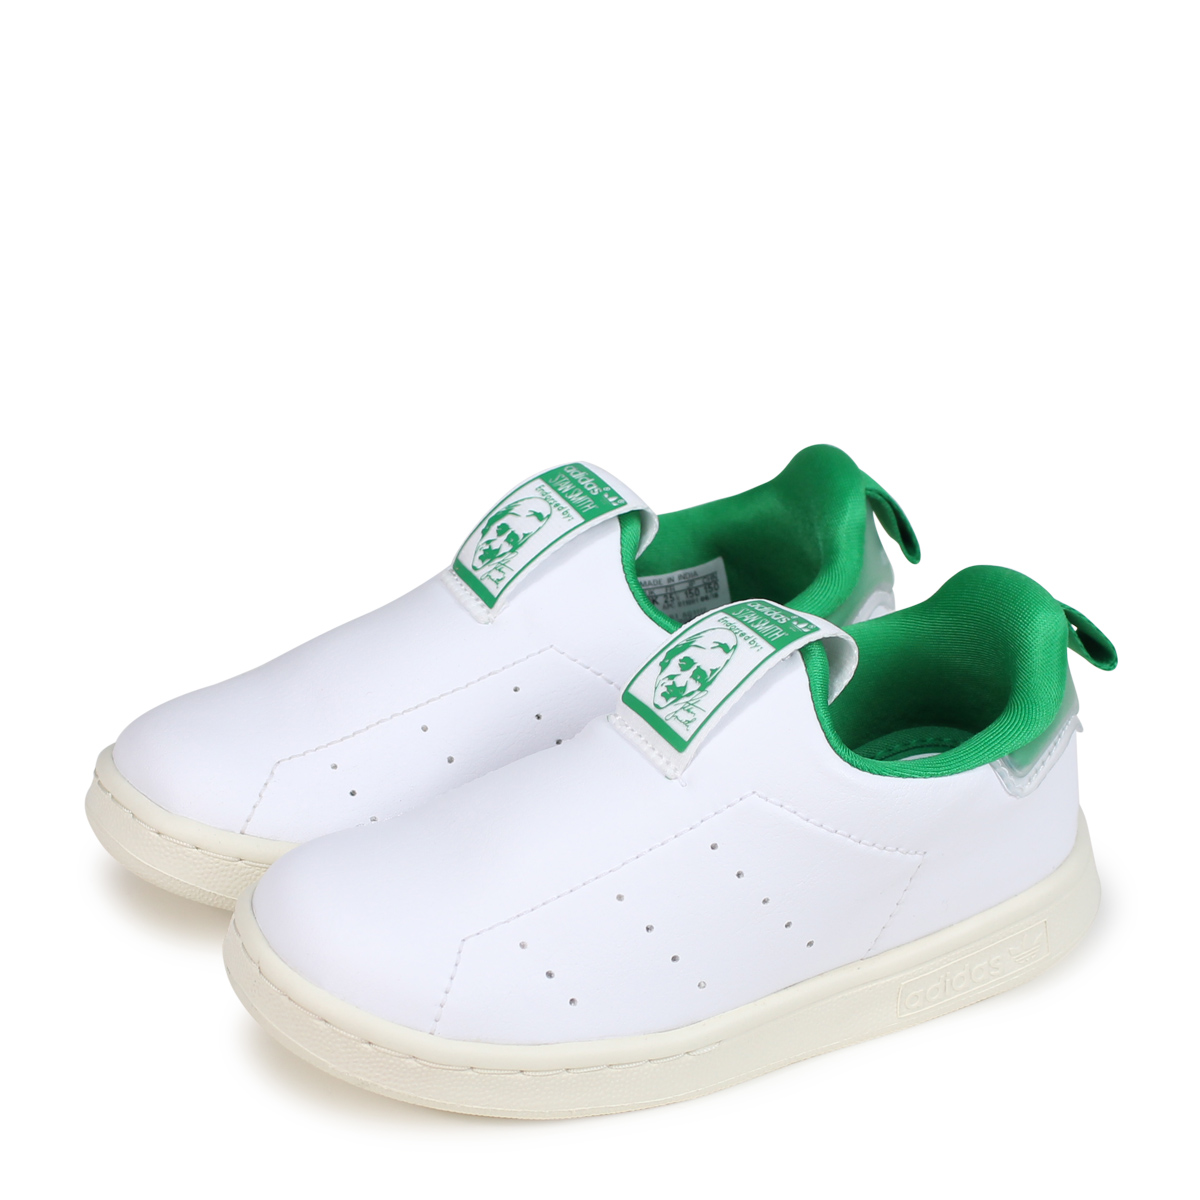 online retailer edea1 d537f adidas Originals STAN SMITH 360 I Adidas originals Stan Smith baby sneakers  AQ1112 white [load planned Shinnyu load in reservation product 10/12 ...